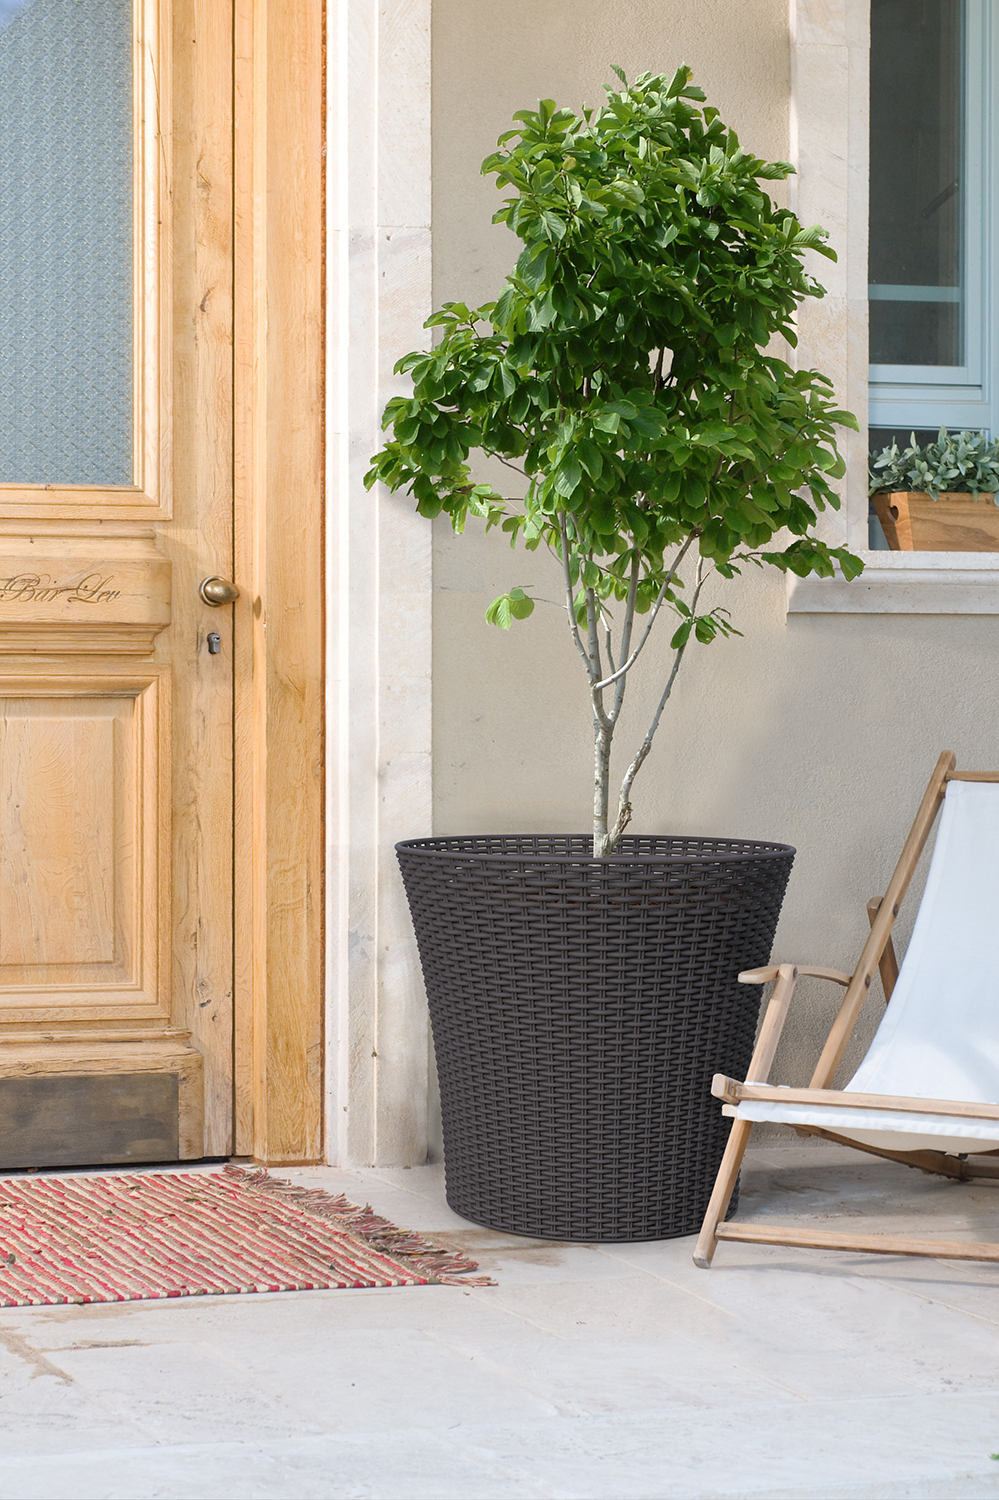 KETER- Large Woven Planter